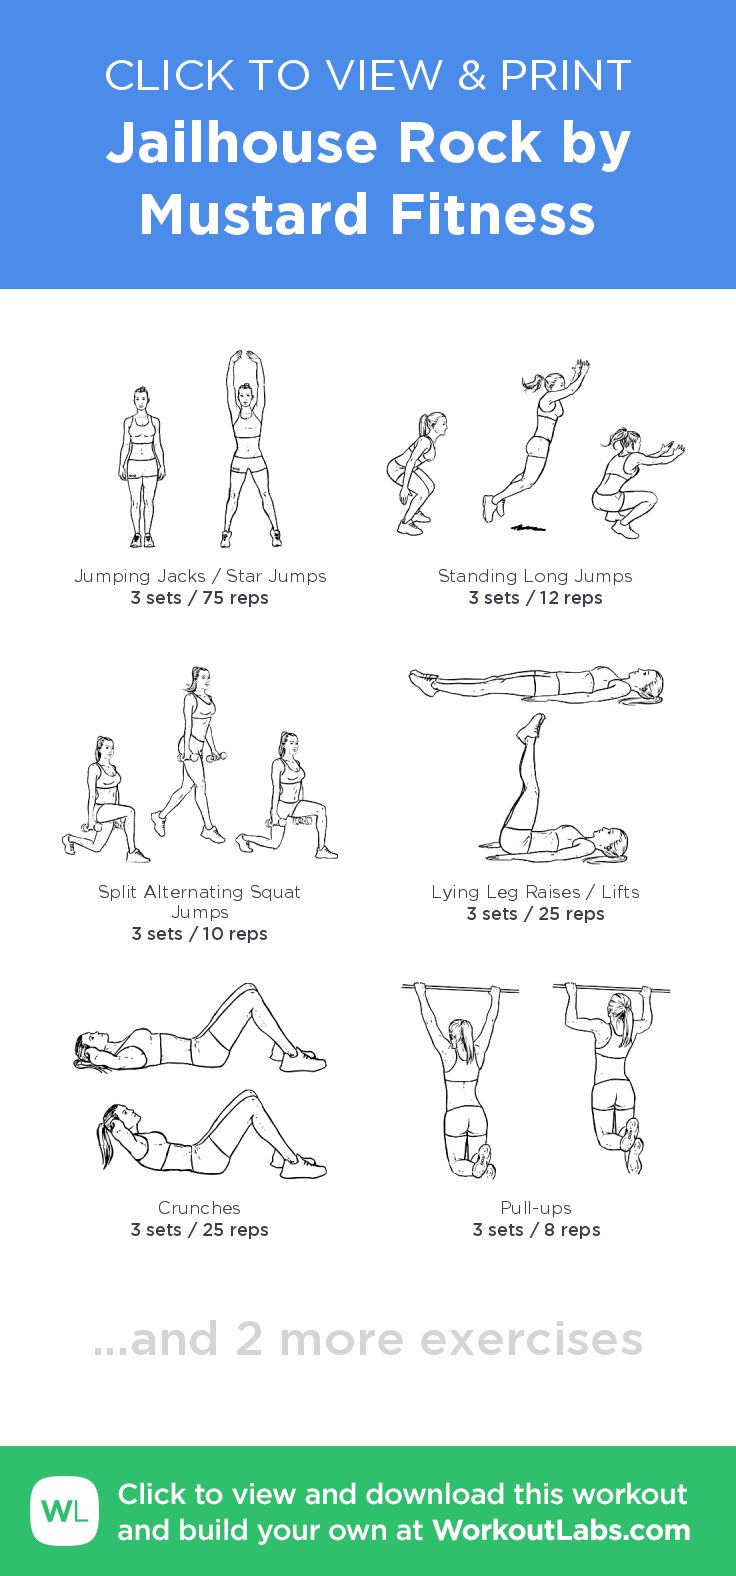 This is a picture of Amazing Free Printable Workout Plans